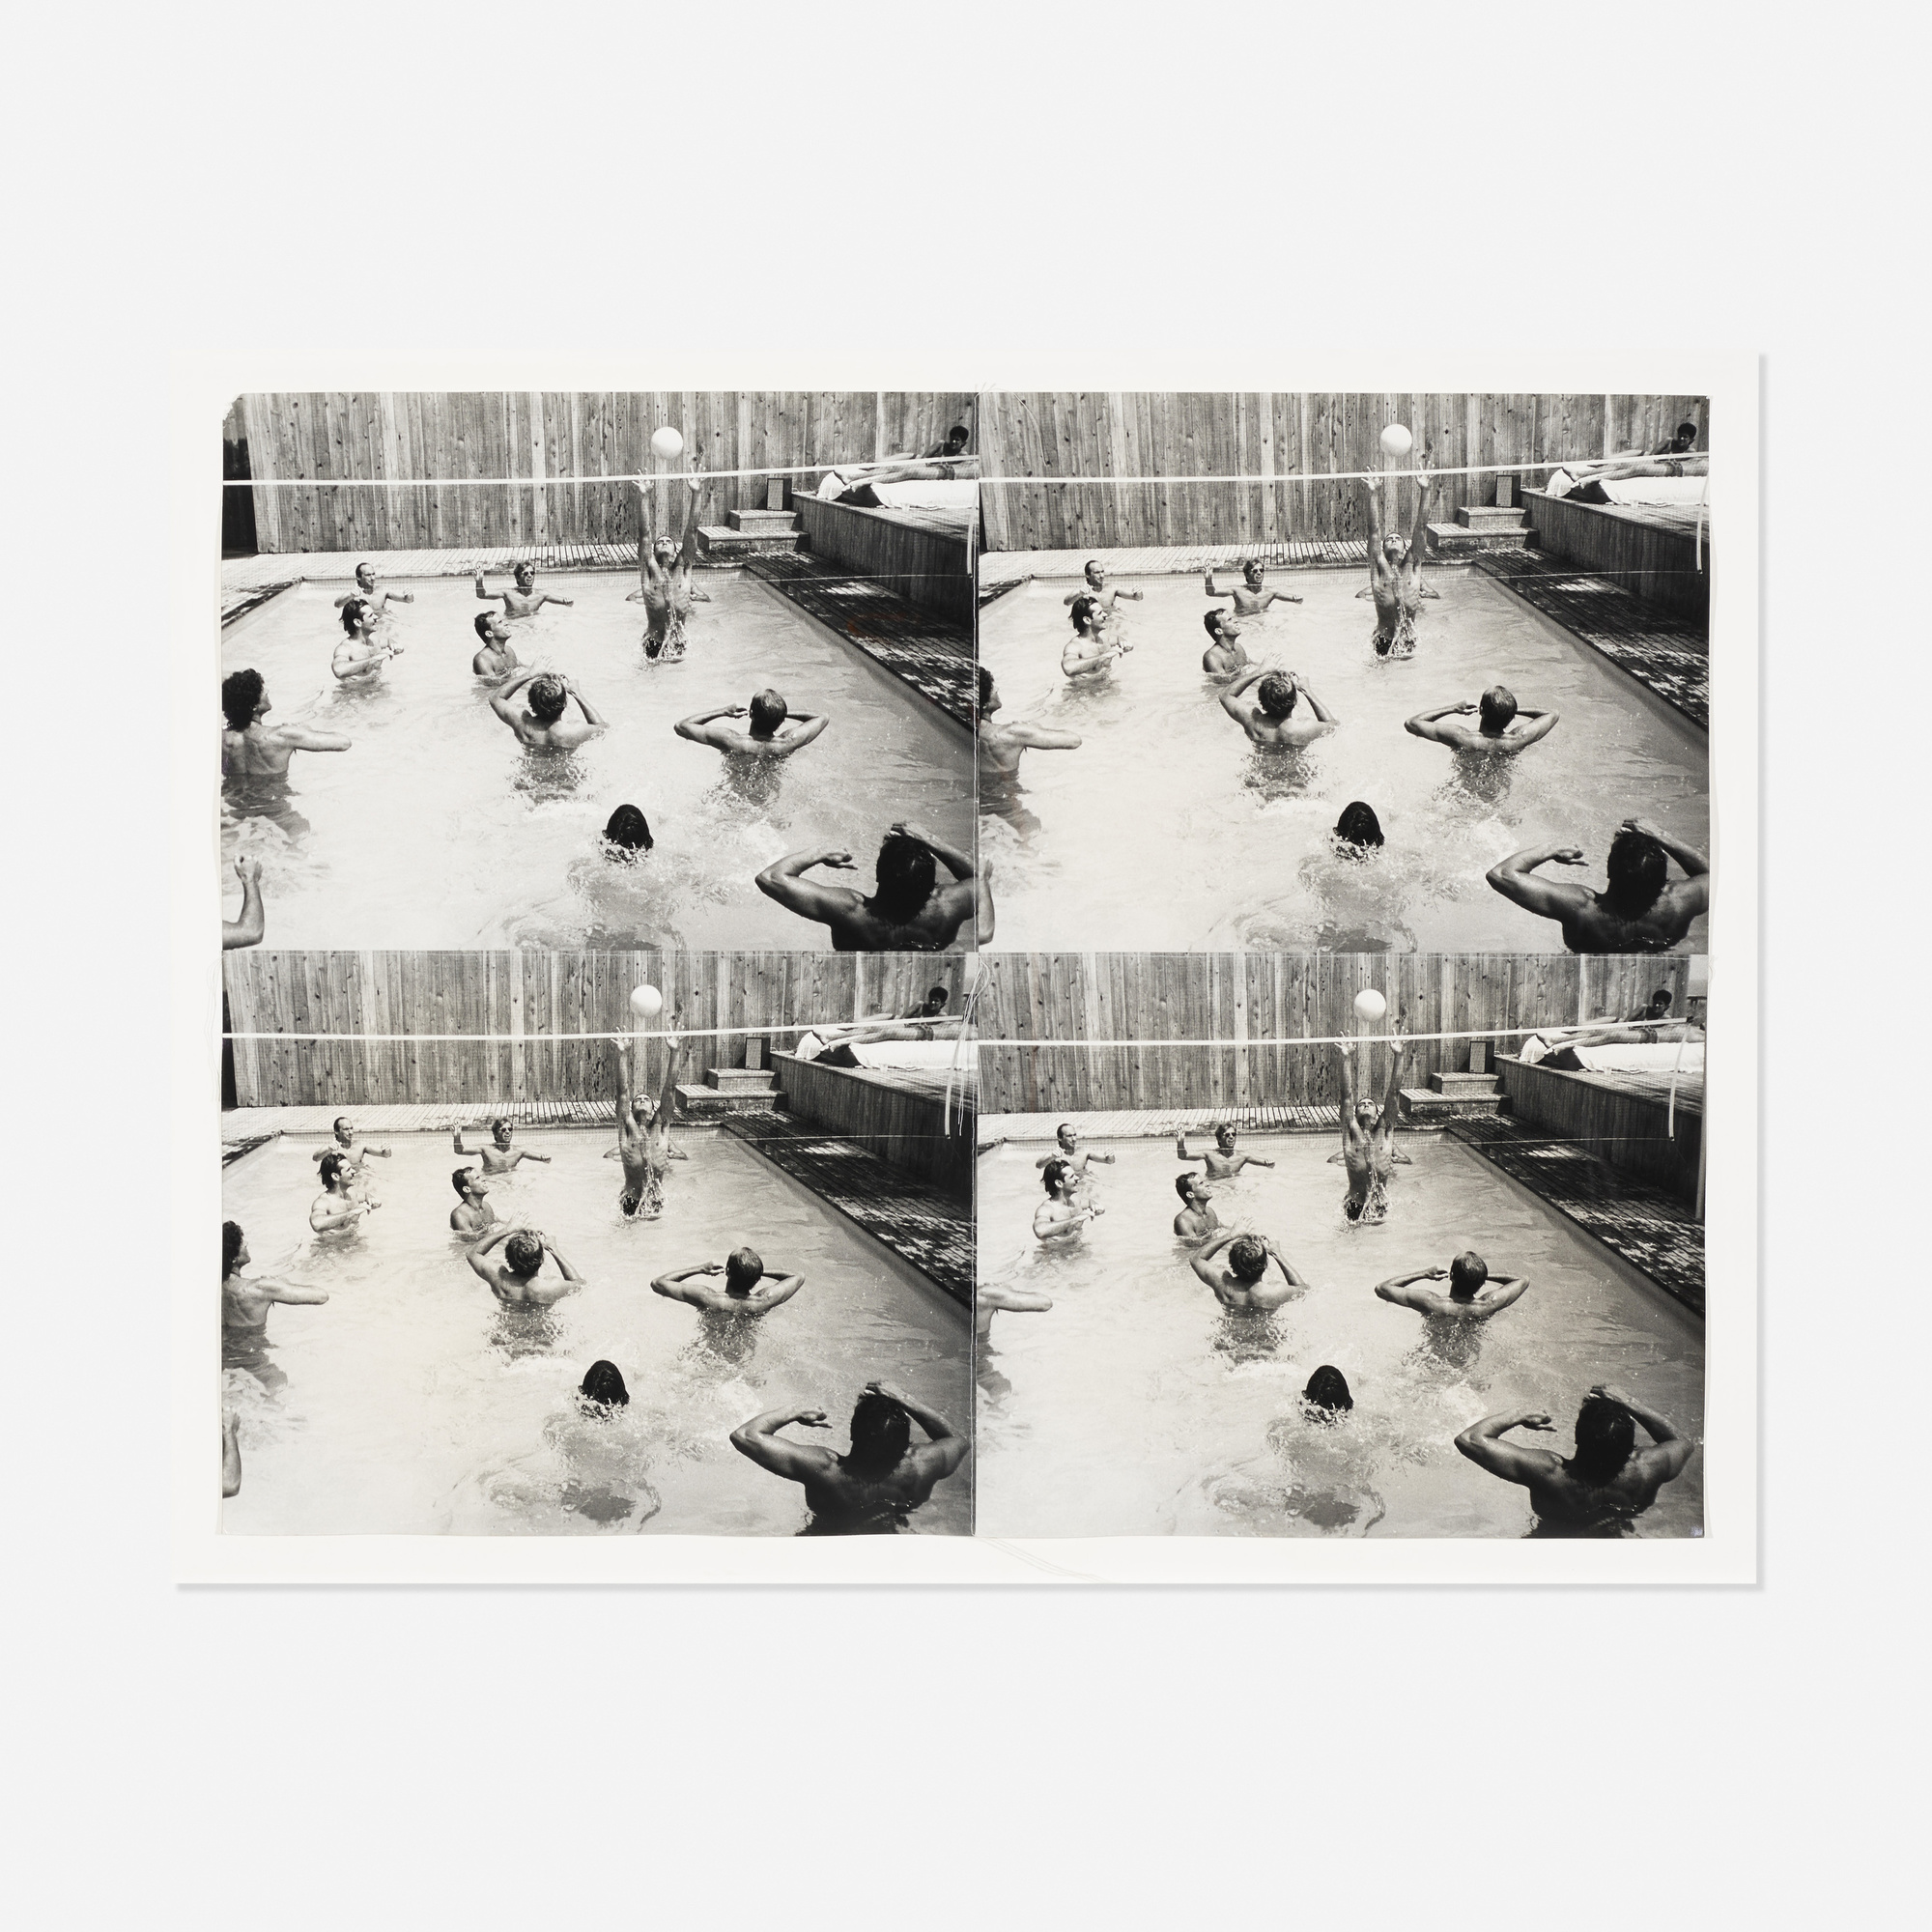 202: Andy Warhol / Pool Party (1 of 1)